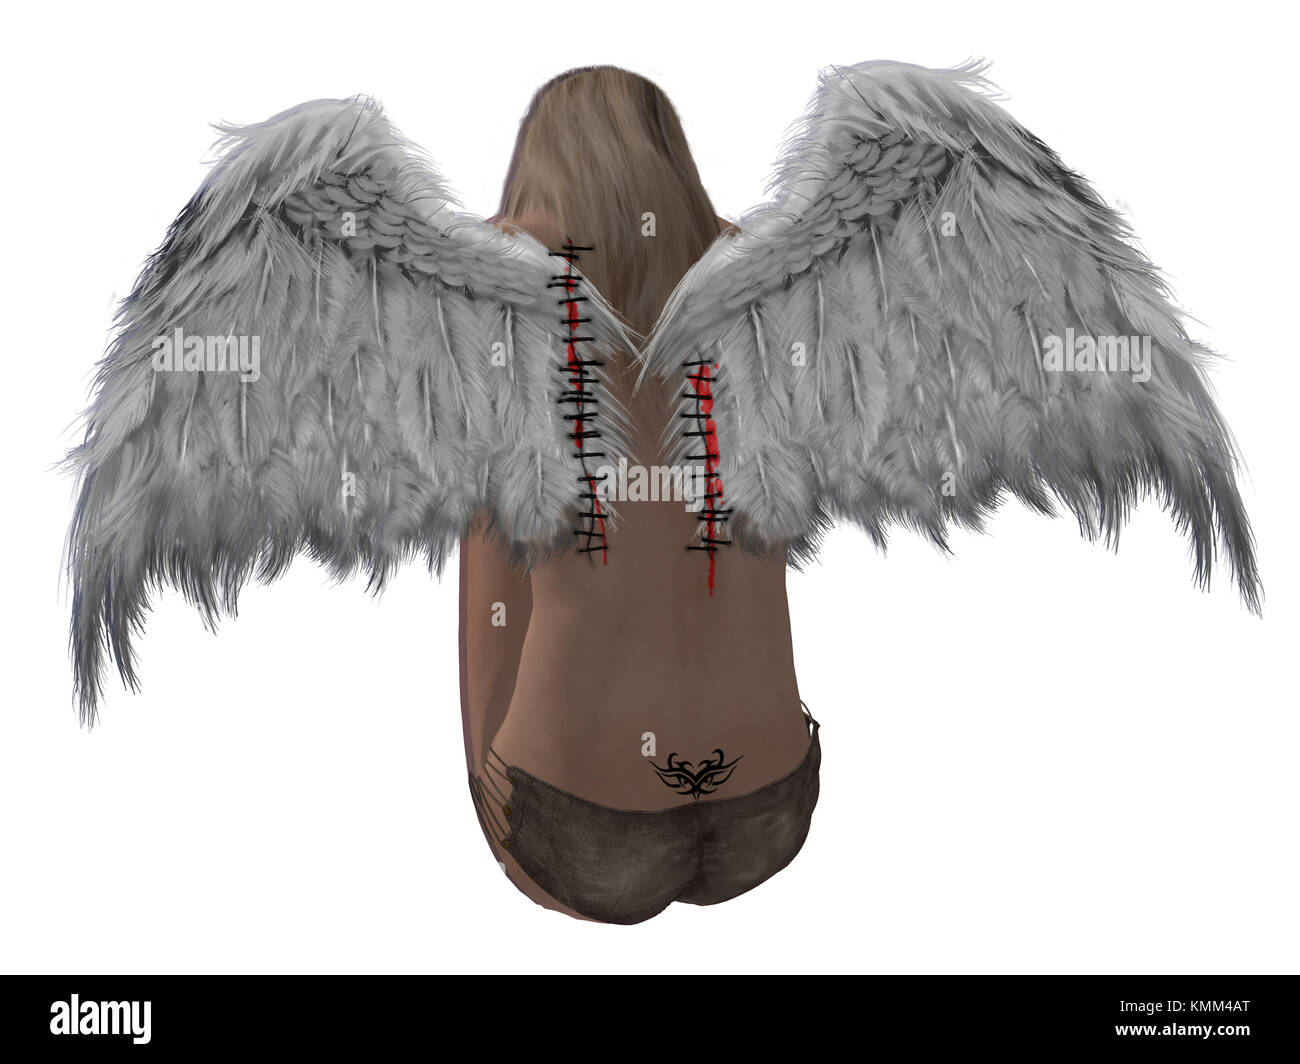 Blonde hair angel with stitched wings and a tattoo - Stock Image